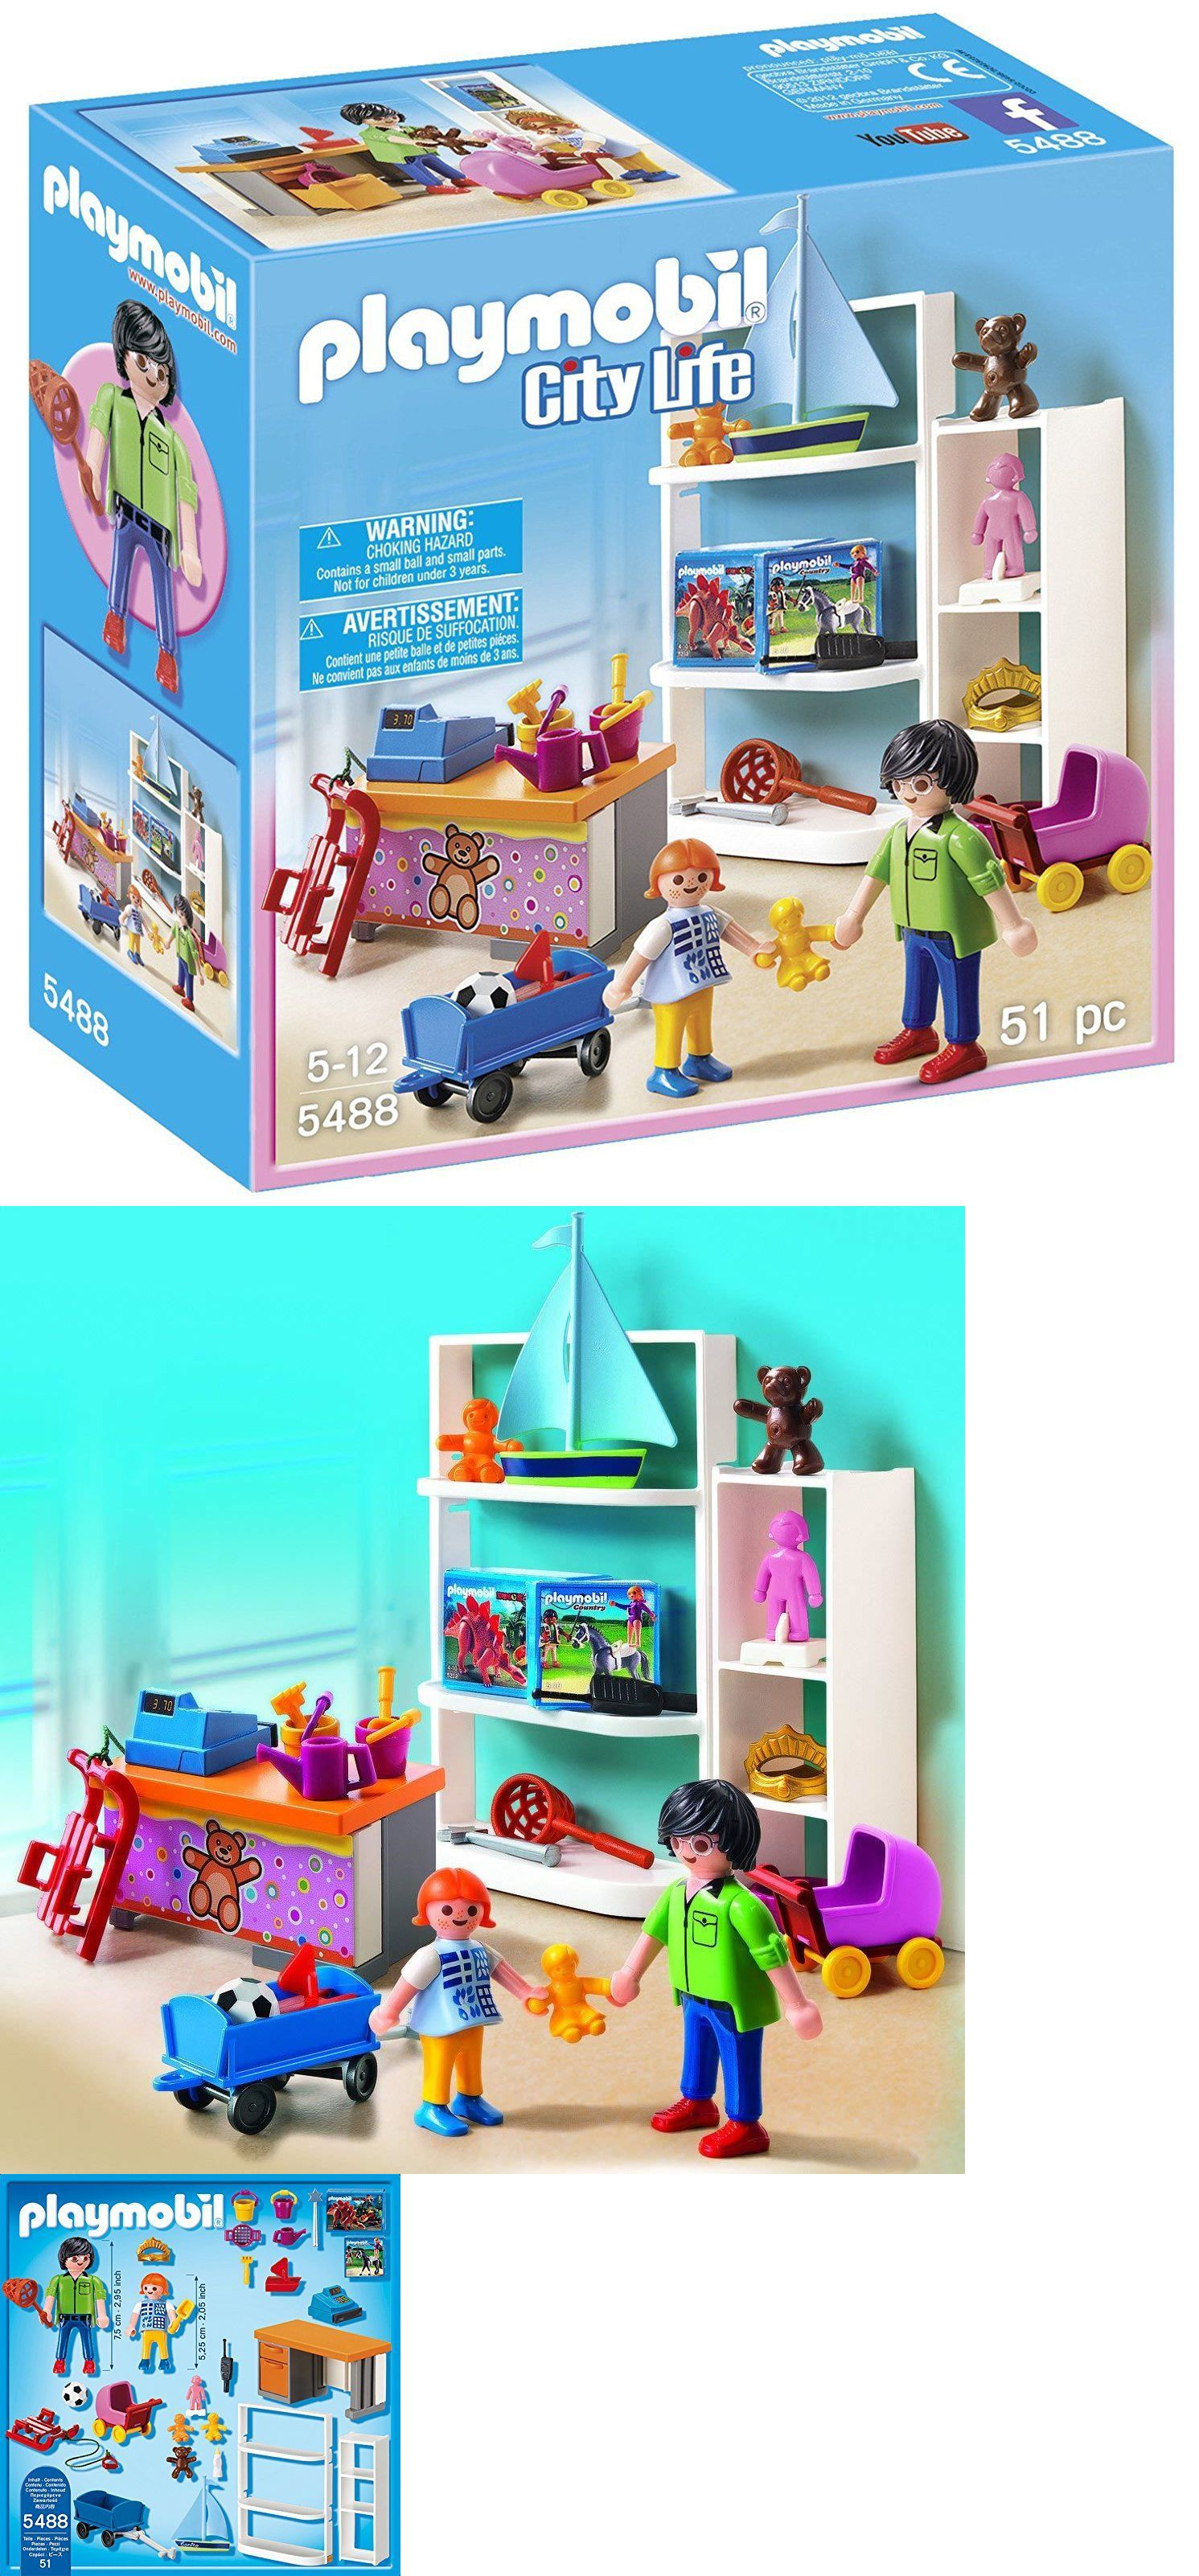 Playmobil 19854 Playmobil 5488 City Life Toy Shop Playset 51 Pc New Sealed Buy It Now Only 24 9 On Ebay Playmobil Pl Playmobil Mall Stores Playset